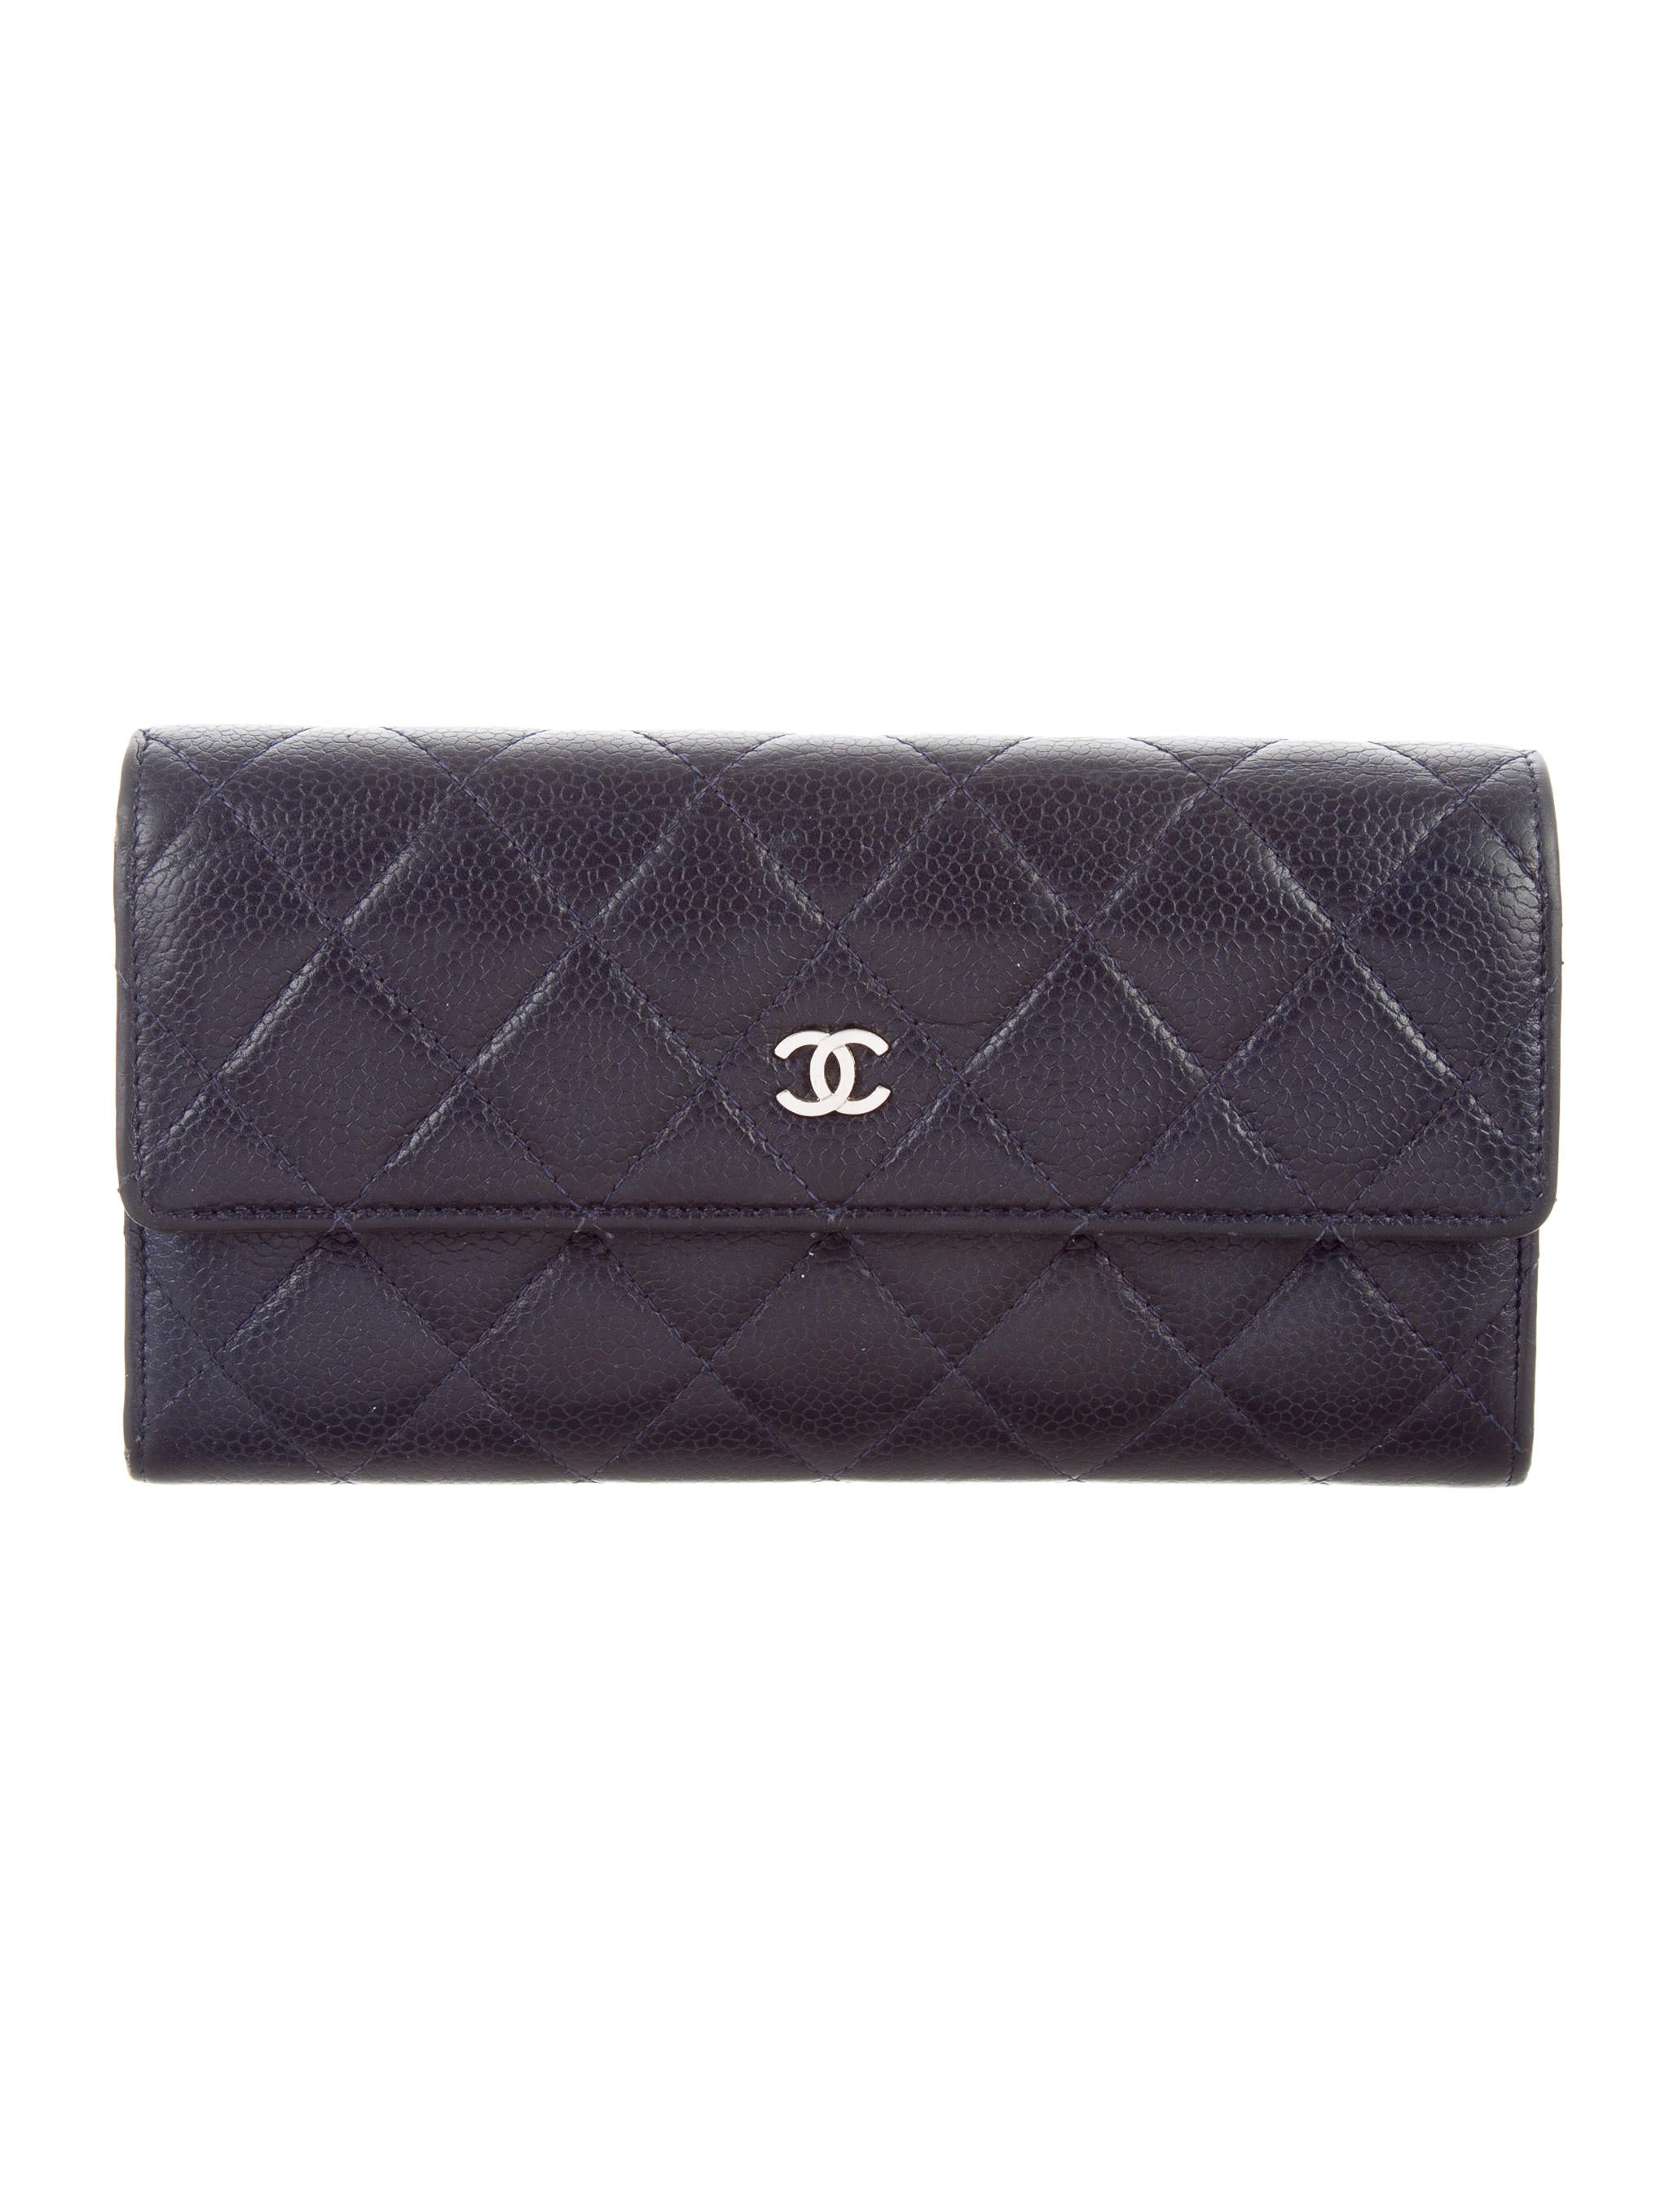 51b85e3142fd Chanel Gusset Flap Wallet A50934y07468 | Stanford Center for ...